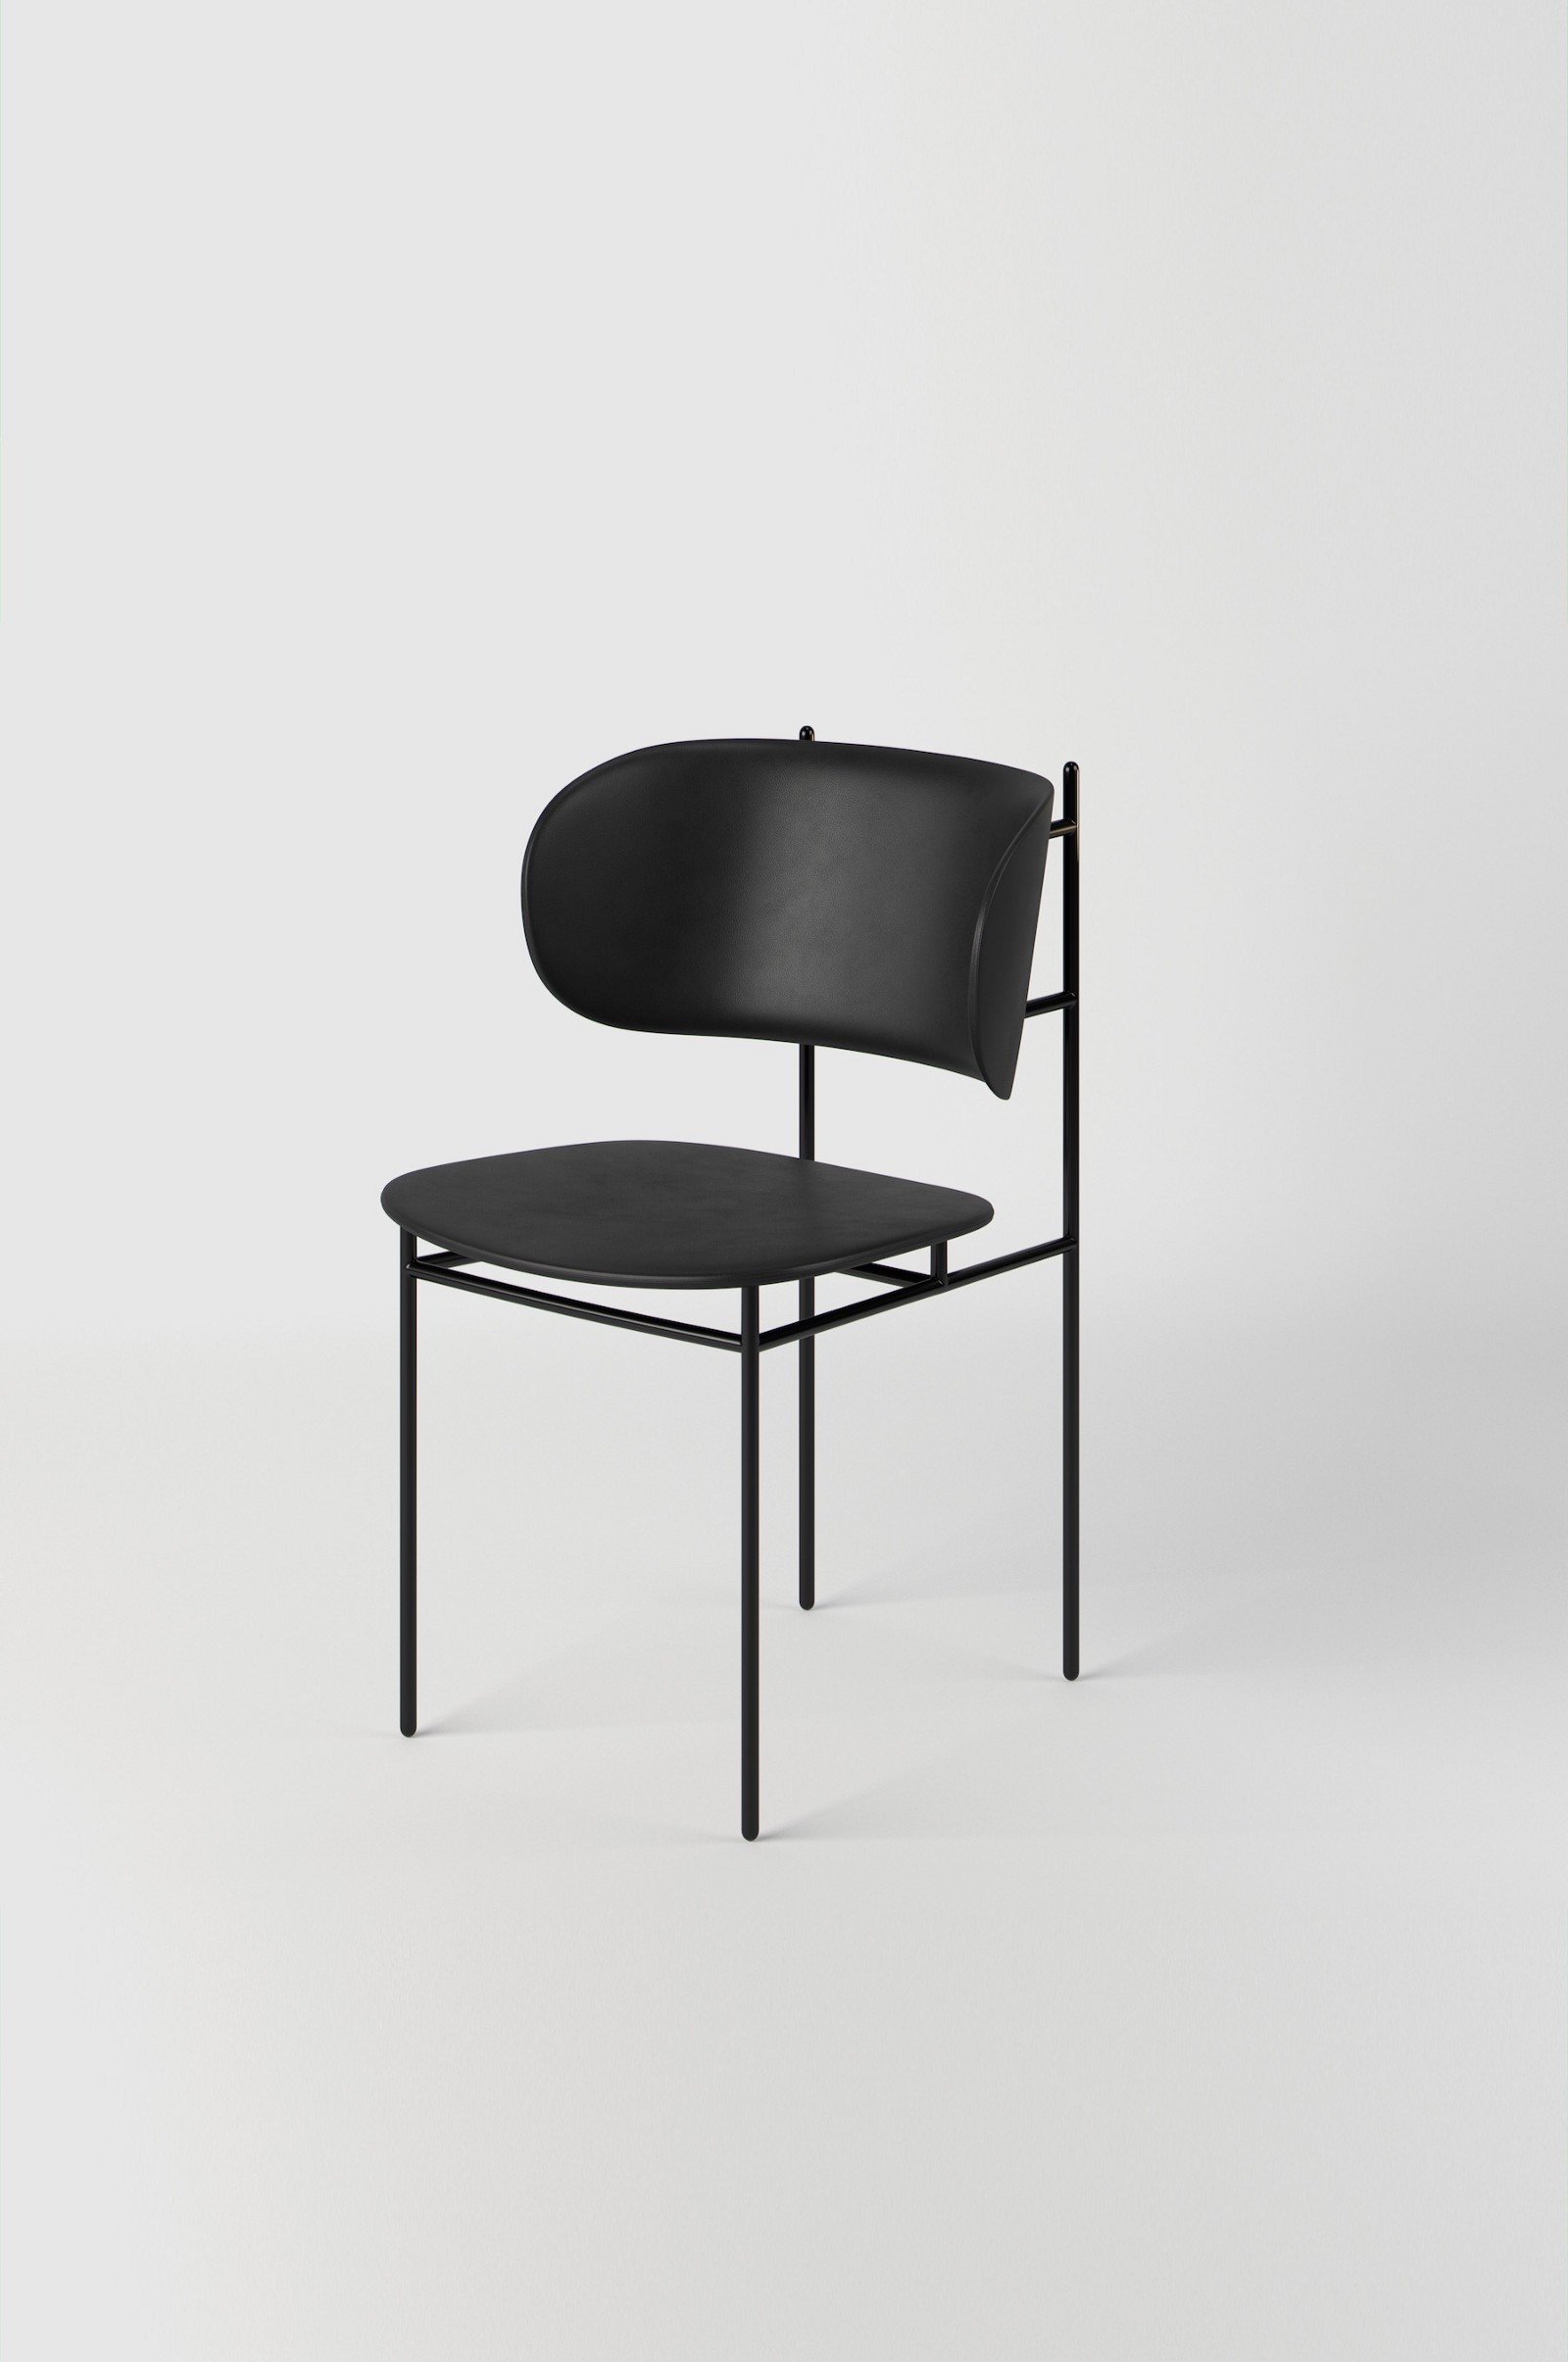 H.3 Chair Is A Minimalist Chair Created By Croatia Based Designers Regular  Company. The Designers Are Presenting Several Prototypes At  SaloneSatellite, ...